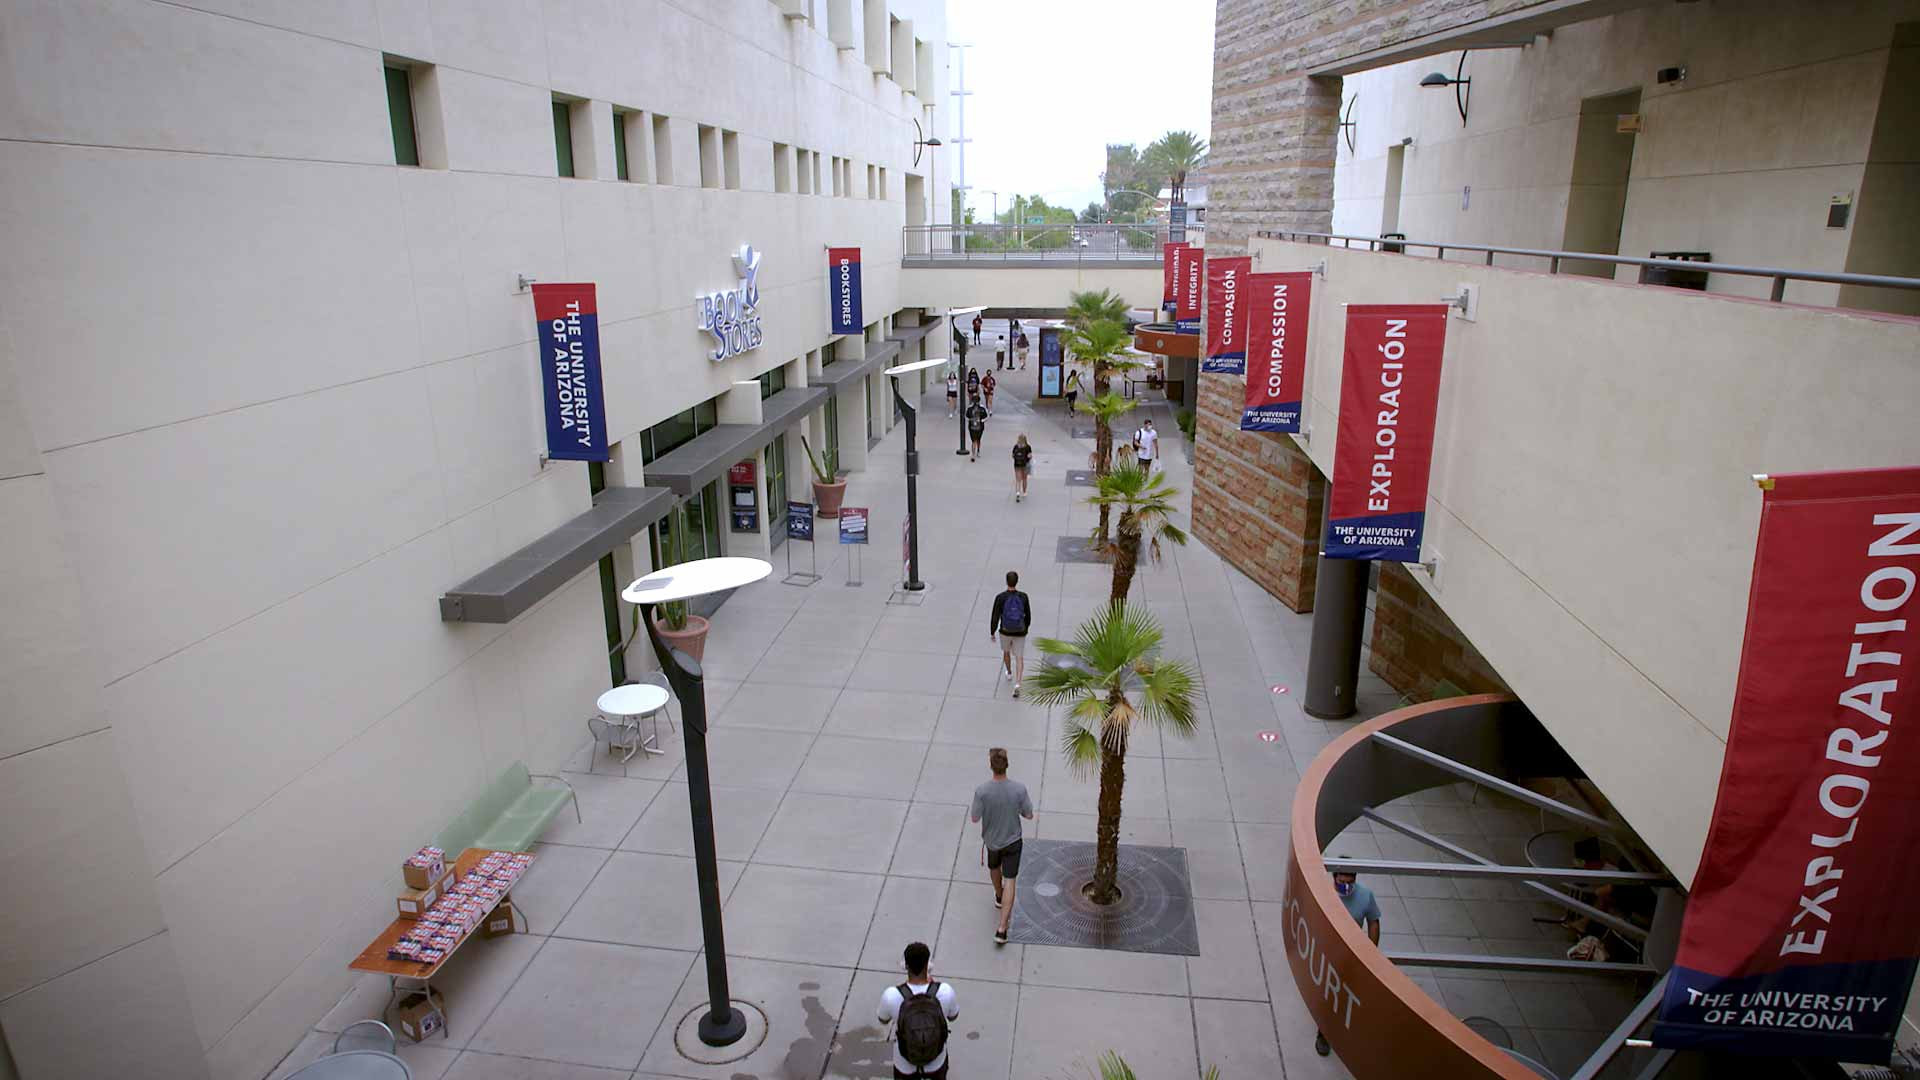 The Student Union Memorial Center at the University of Arizona.